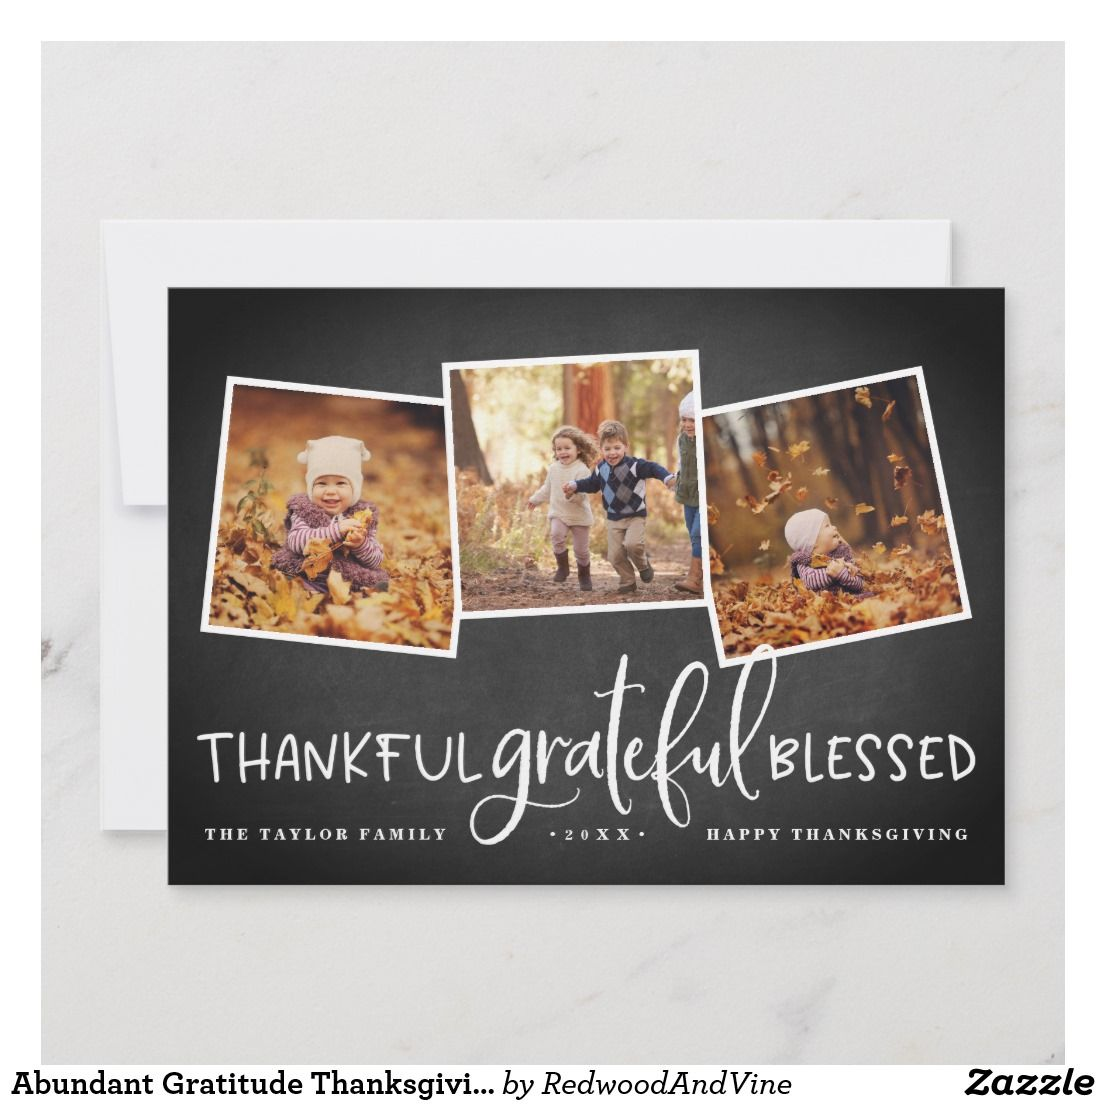 Abundant Gratitude Thanksgiving Photo Collage Card | Zazzle.com